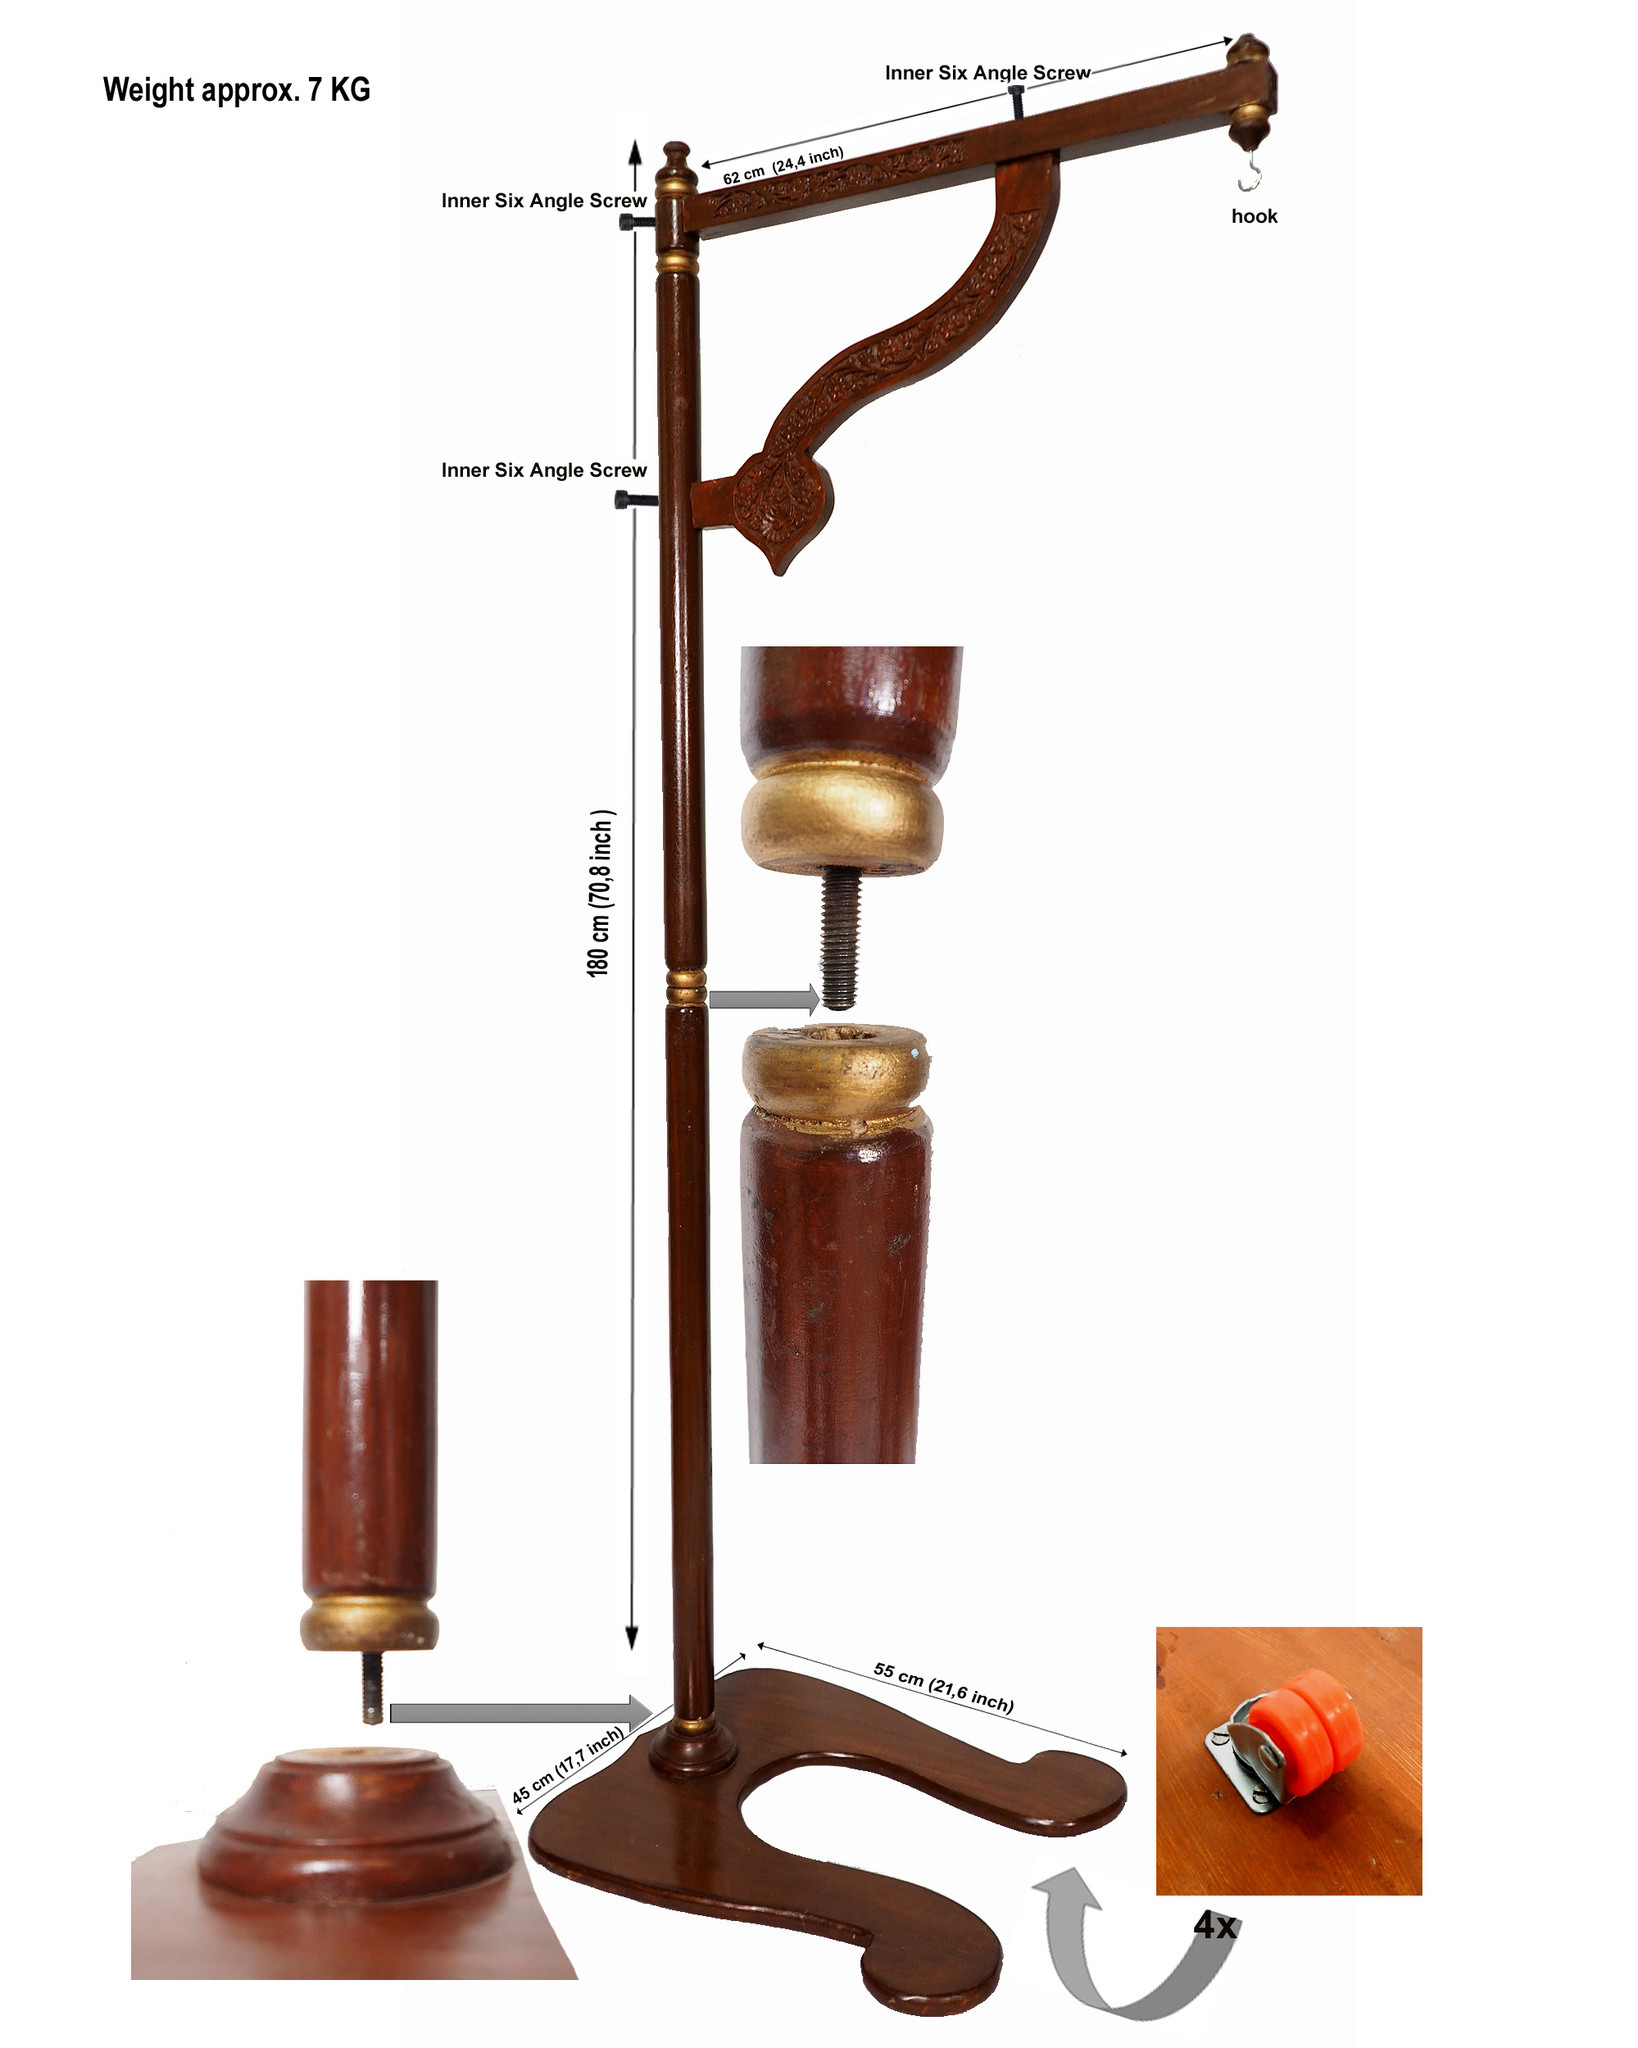 orient solid wood shirodhara ayurveda forehead head casting stand stood including 2.5 Liter Brass Dhara Vessel  pot No:21